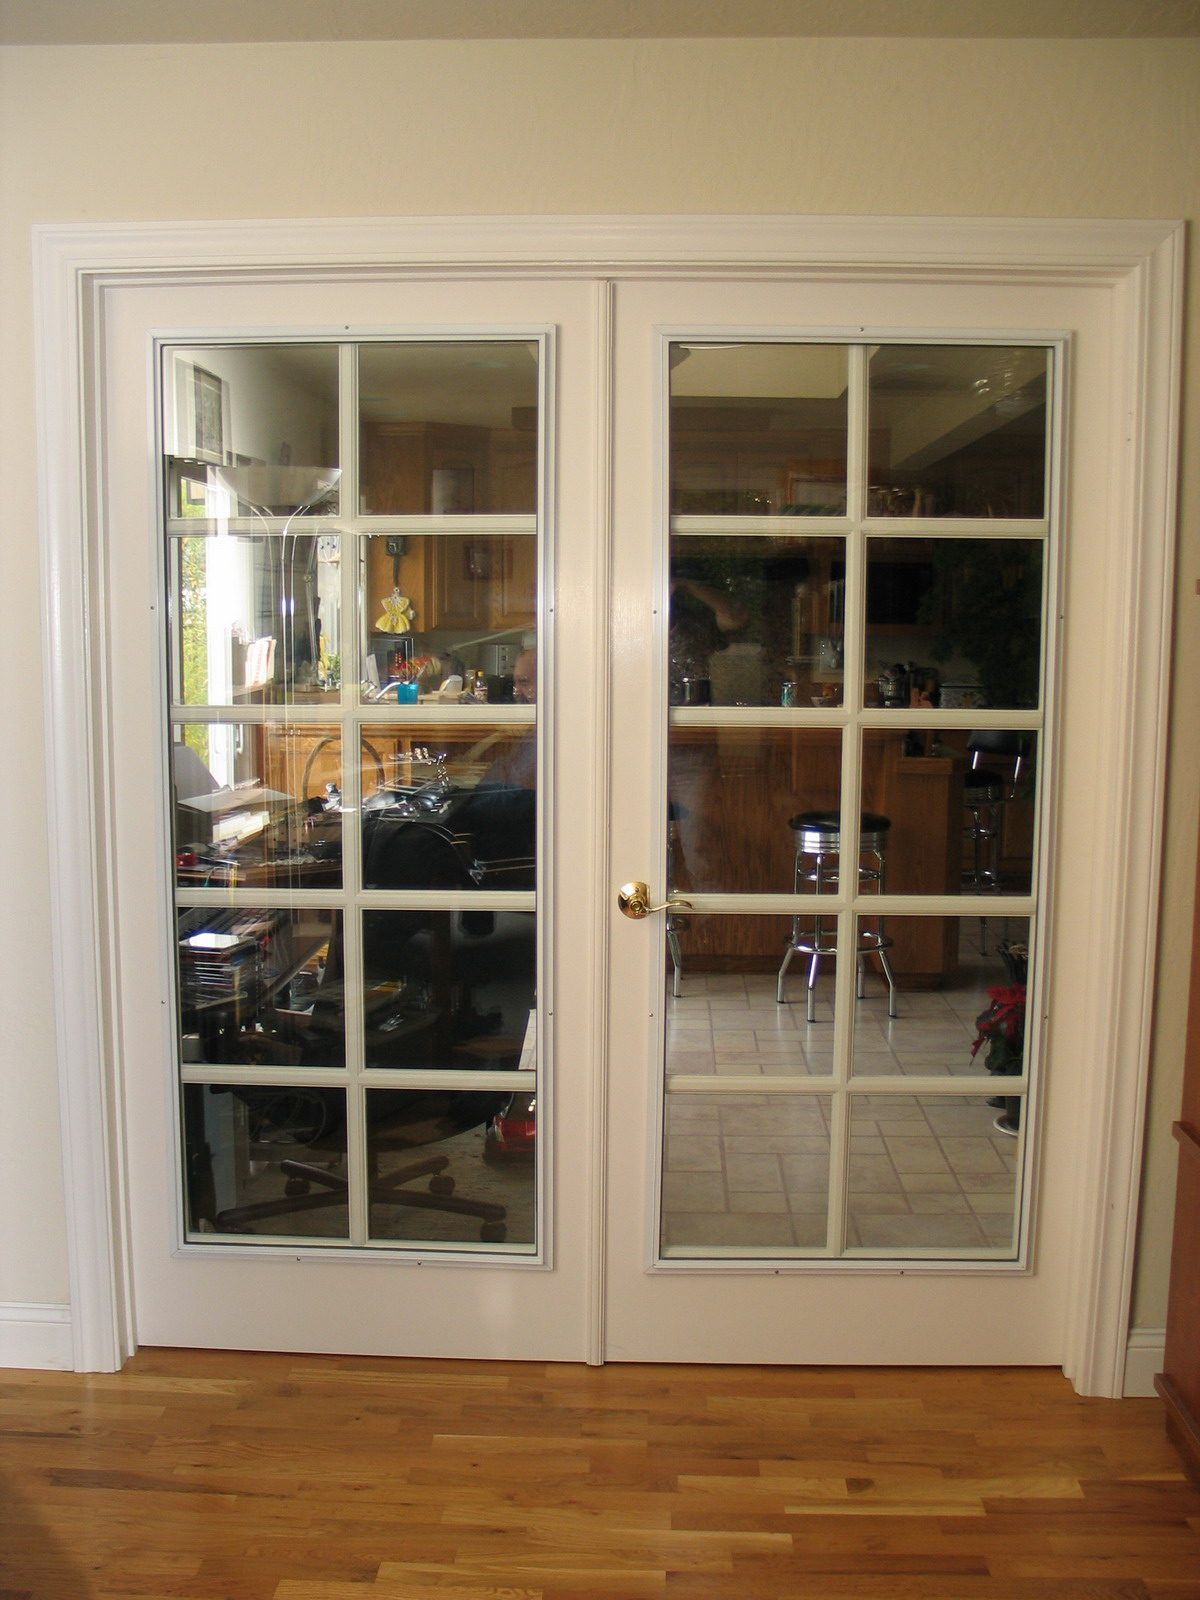 Doors panels 4 panel white interior doors interior door for Interior sliding glass doors